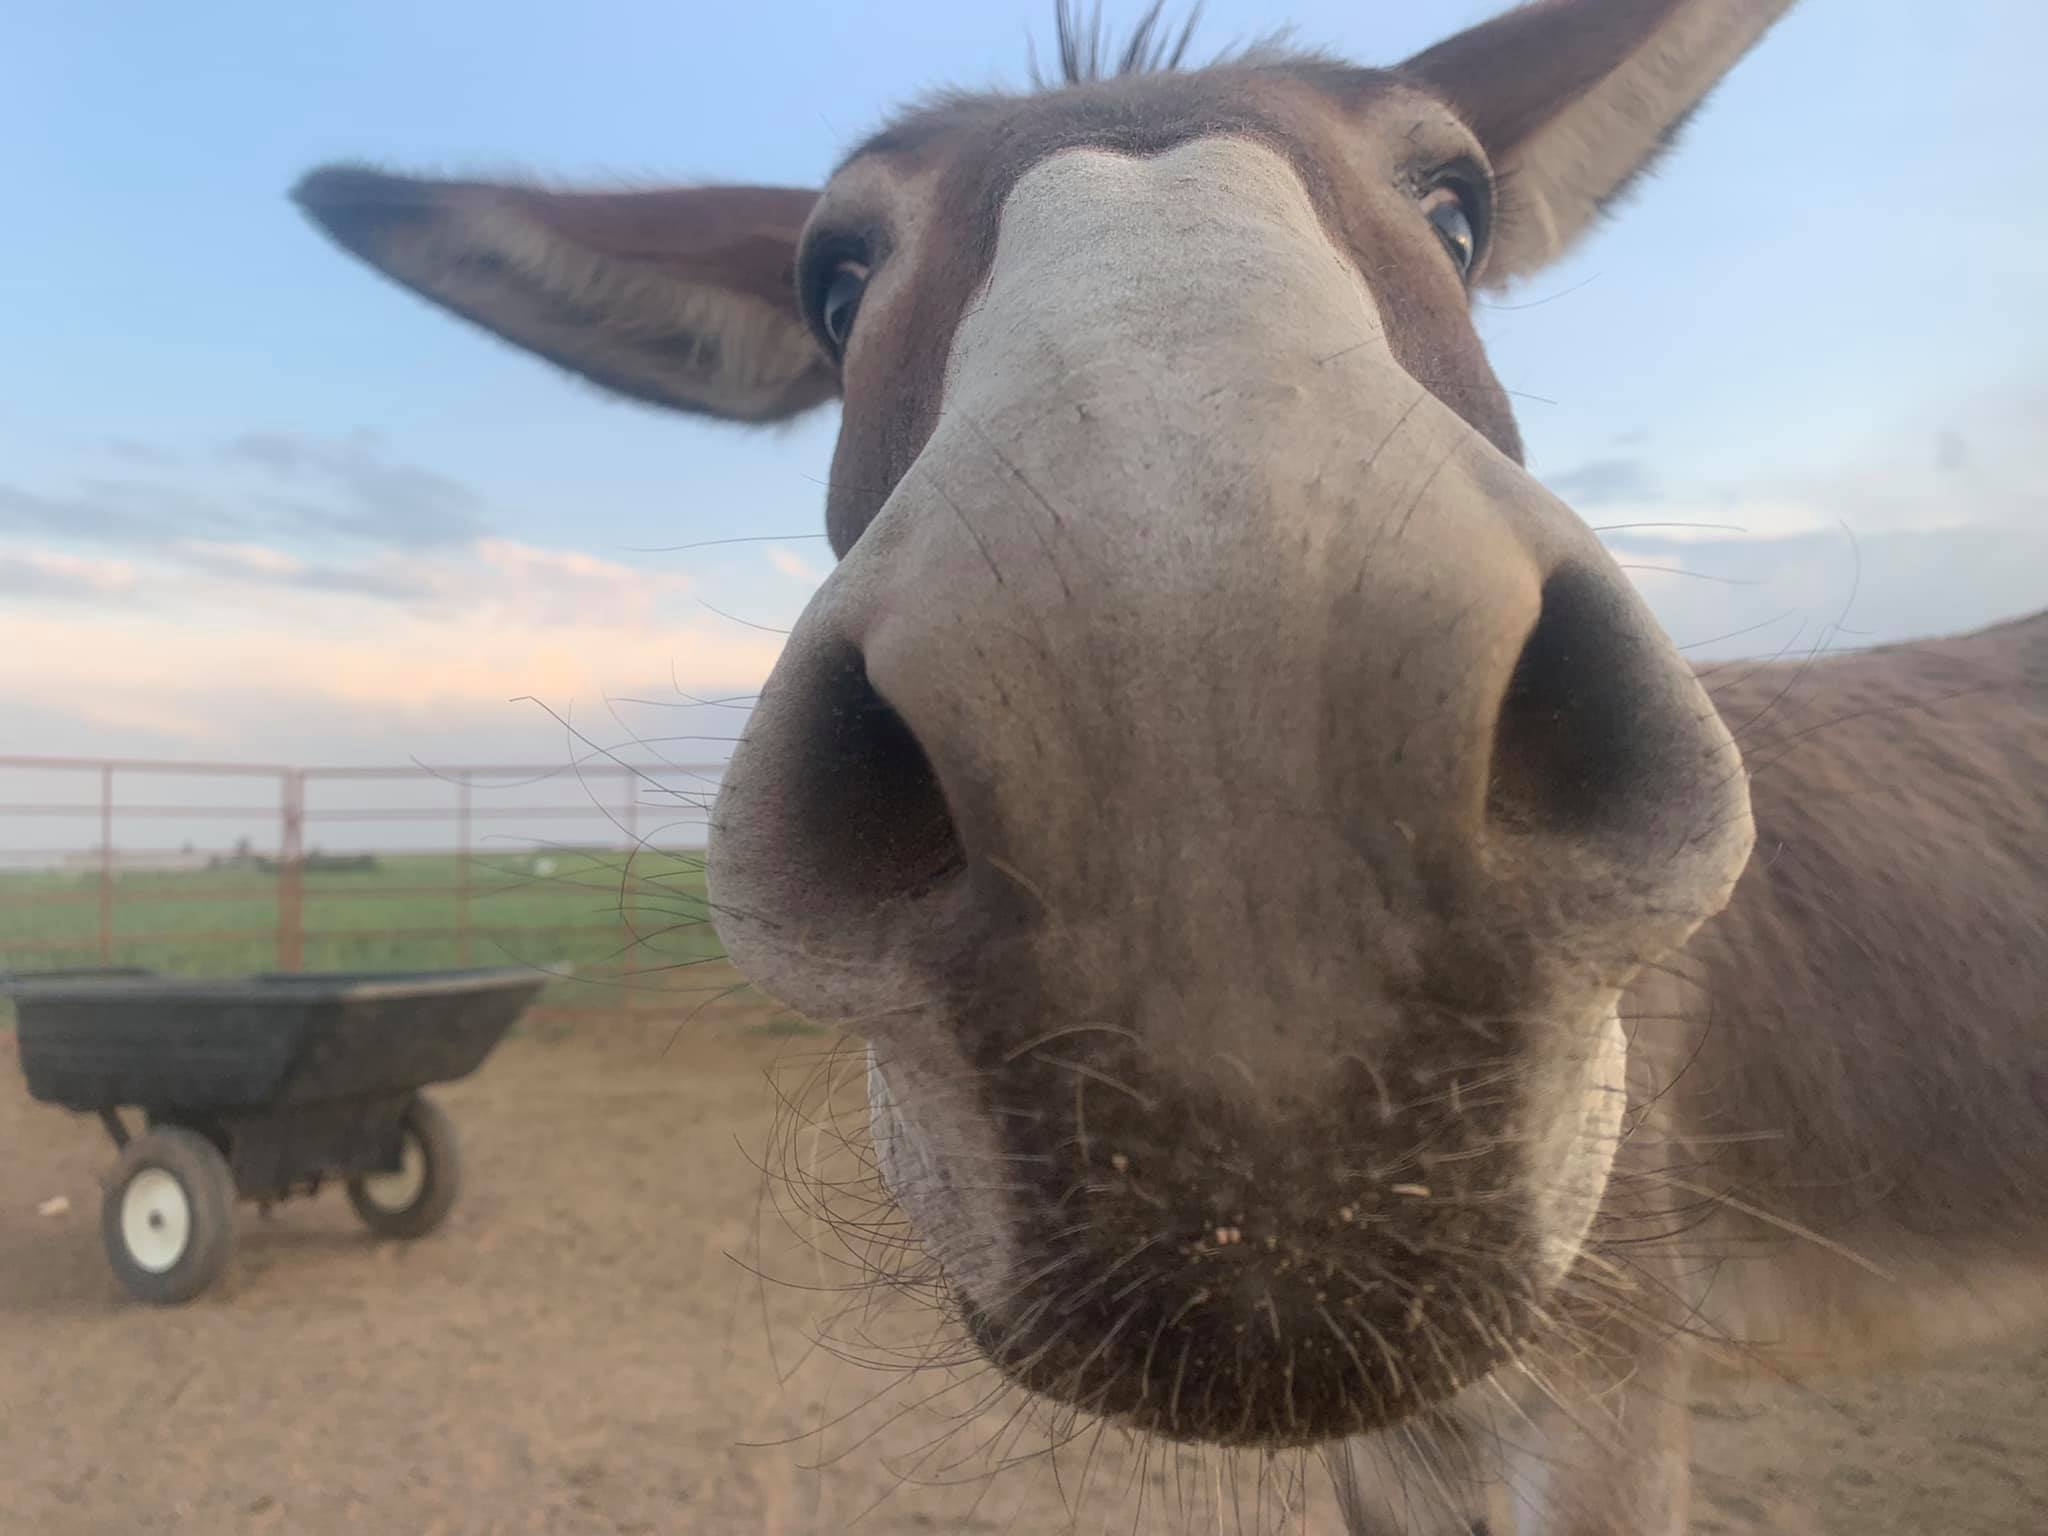 Donkey with Nose close to the camera